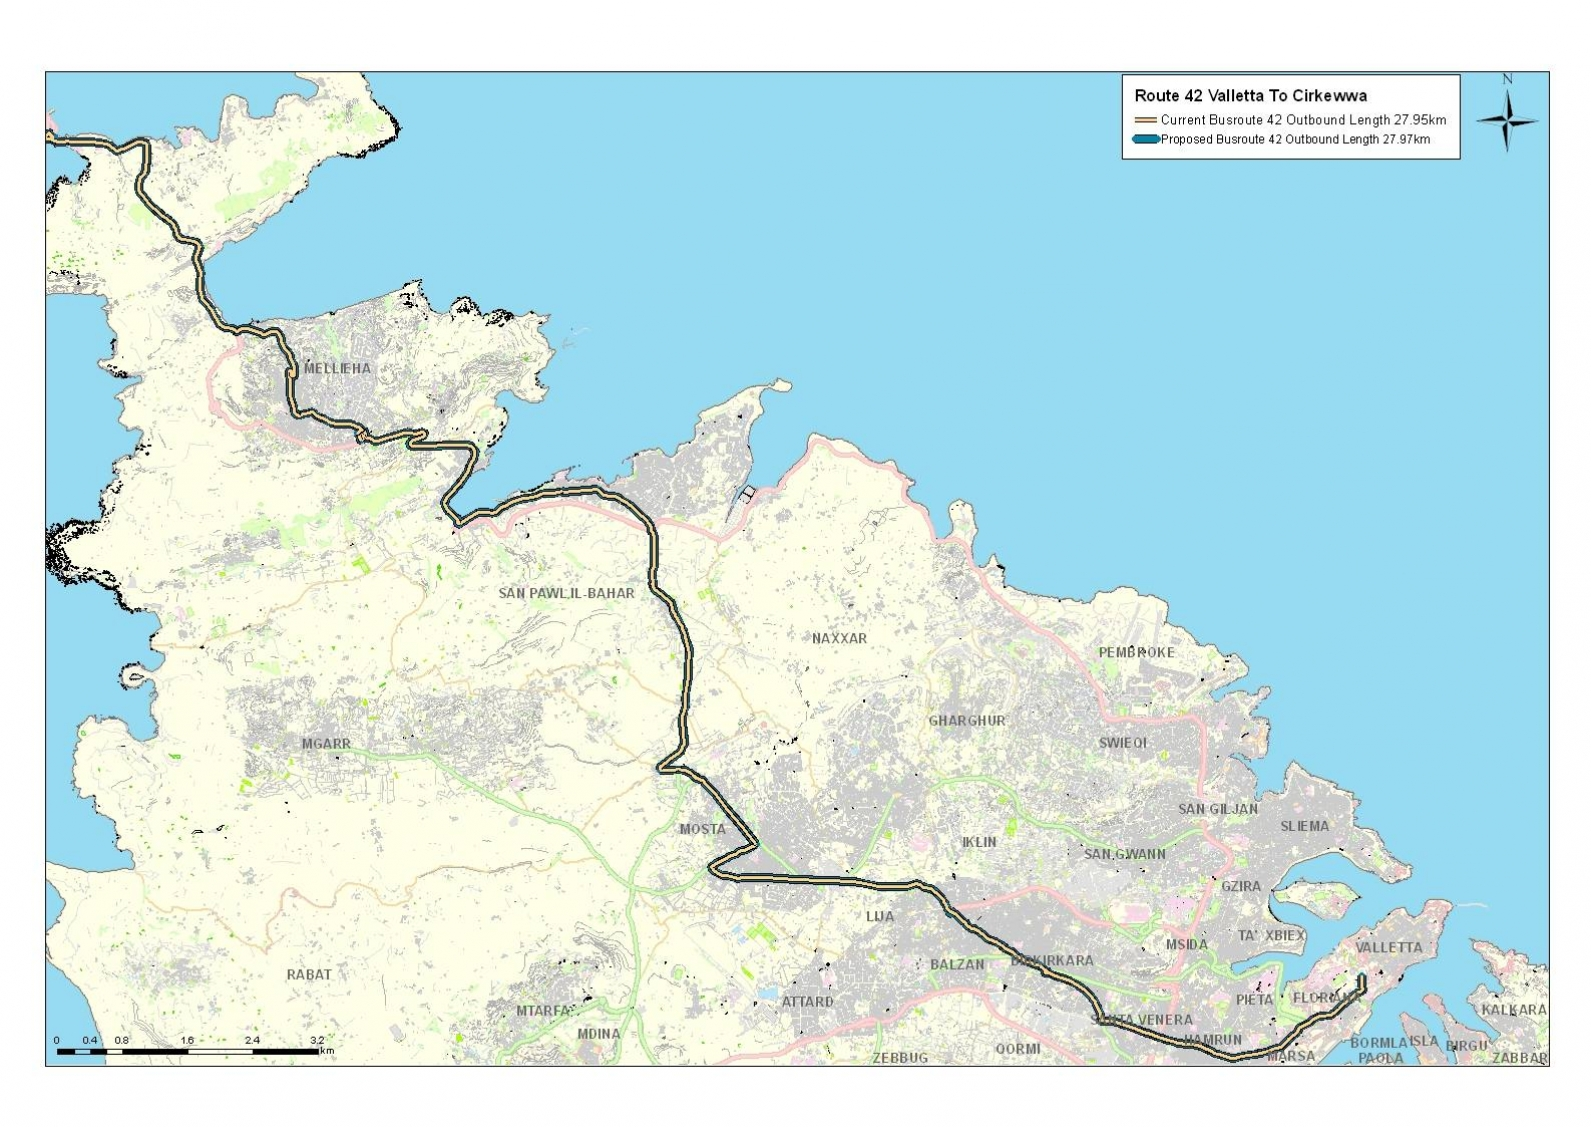 Land-current-network-routes-and-schedules-Cirkewwa-mellieha-sliema-6